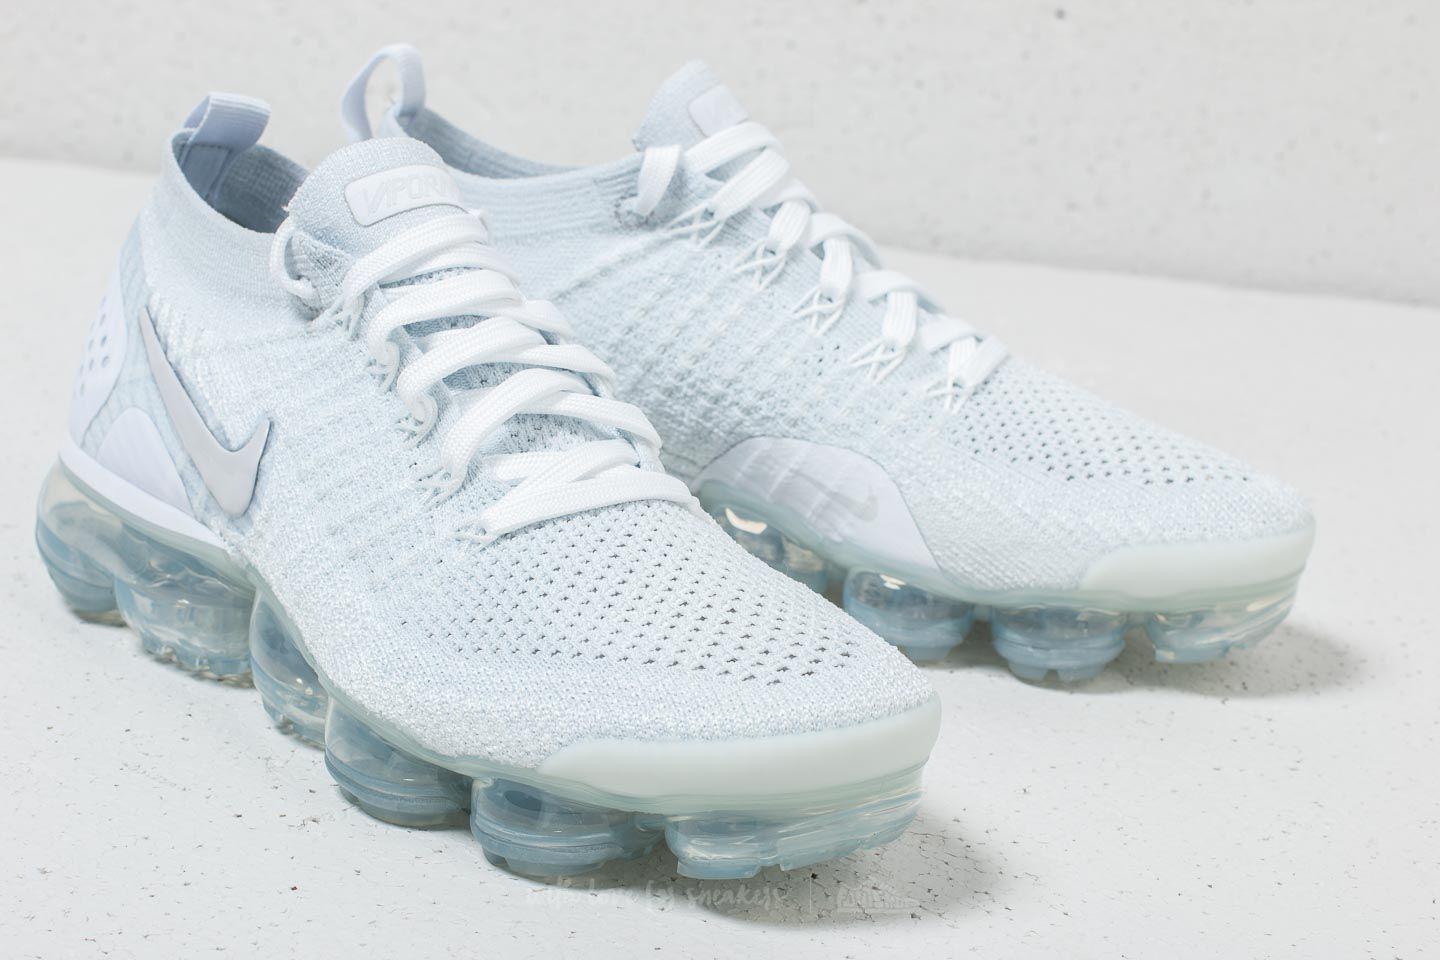 59c5ddf64730a Lyst - Nike Air Vapormax Flyknit 2 W White  White-vast Grey in White